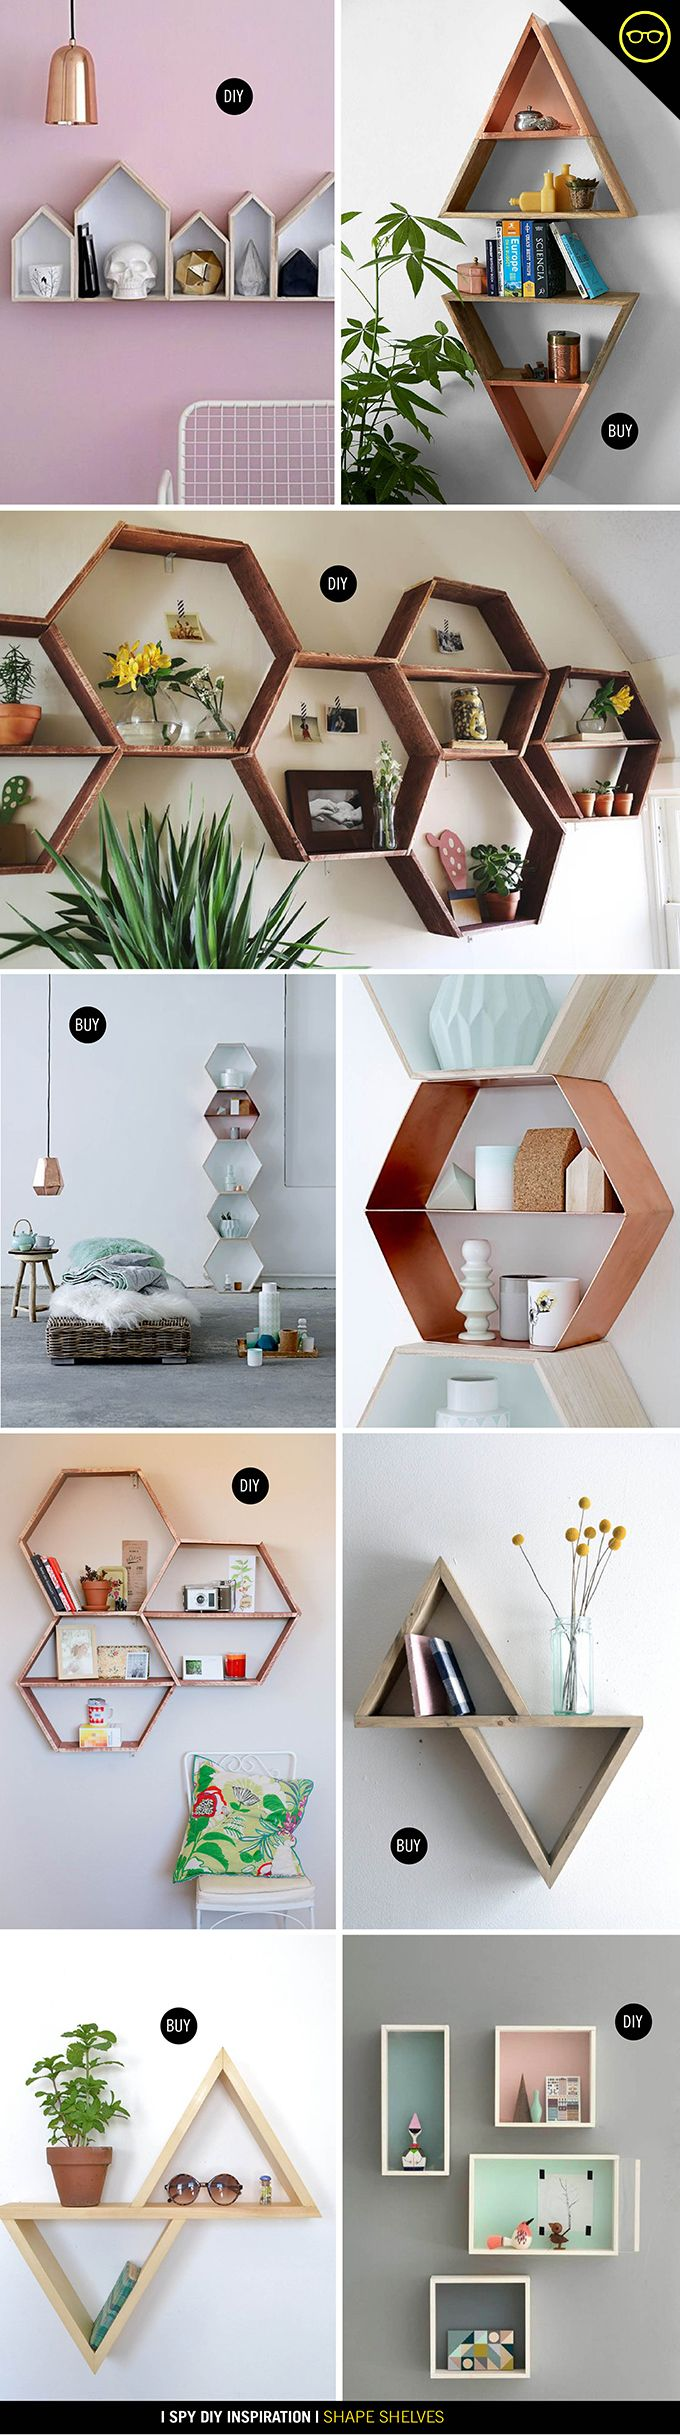 INSPIRATION | SHAPE SHELVES | I SPY DIY